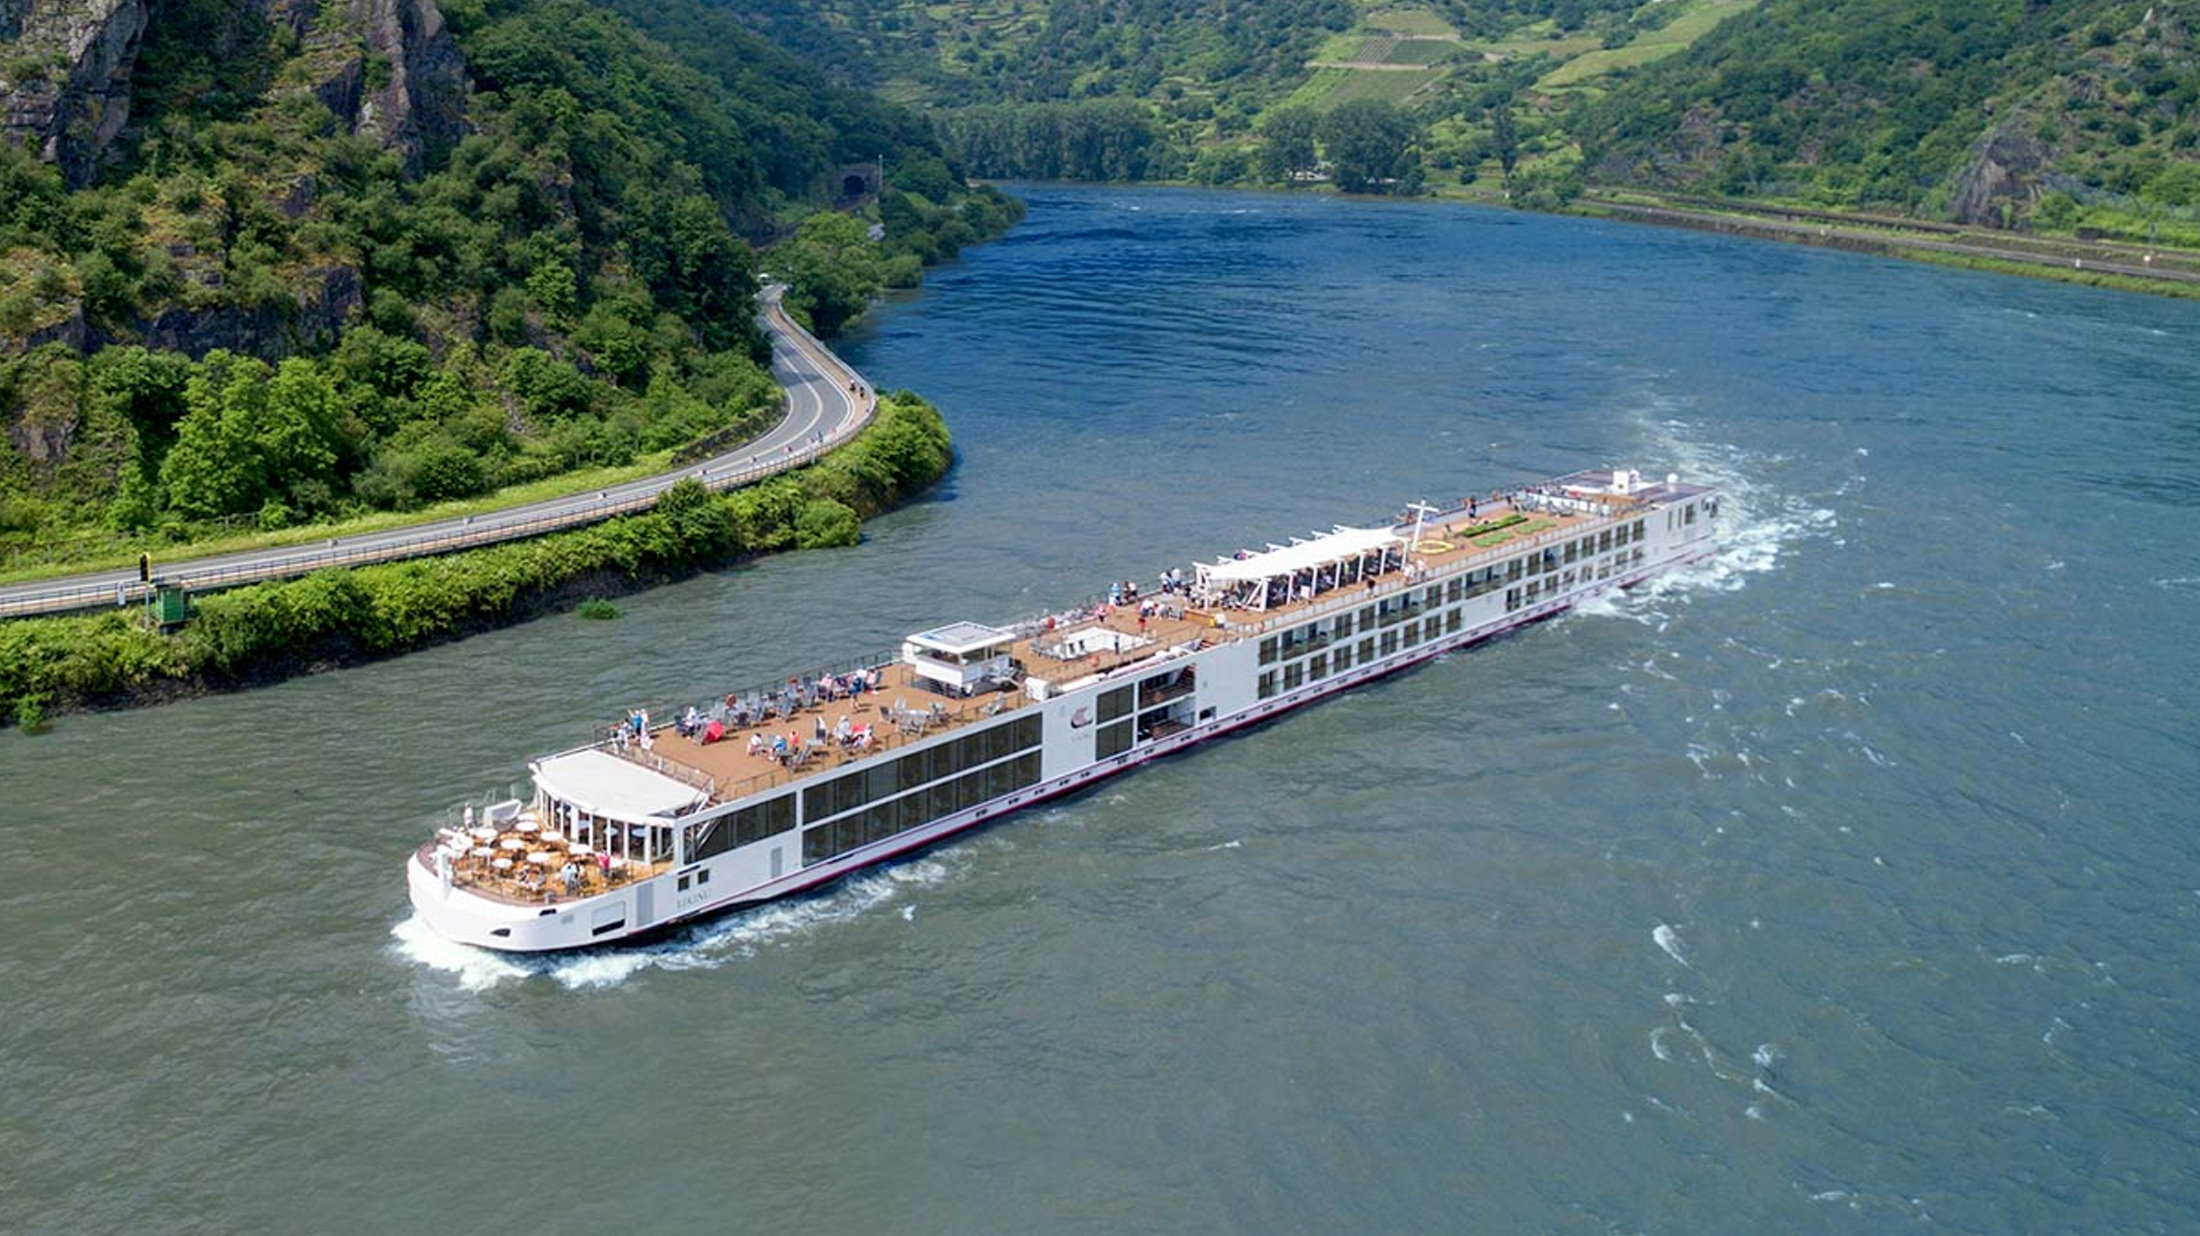 Viking River Cruise 2020.Viking River And Ocean Cruises Schedules Itineraries 2020